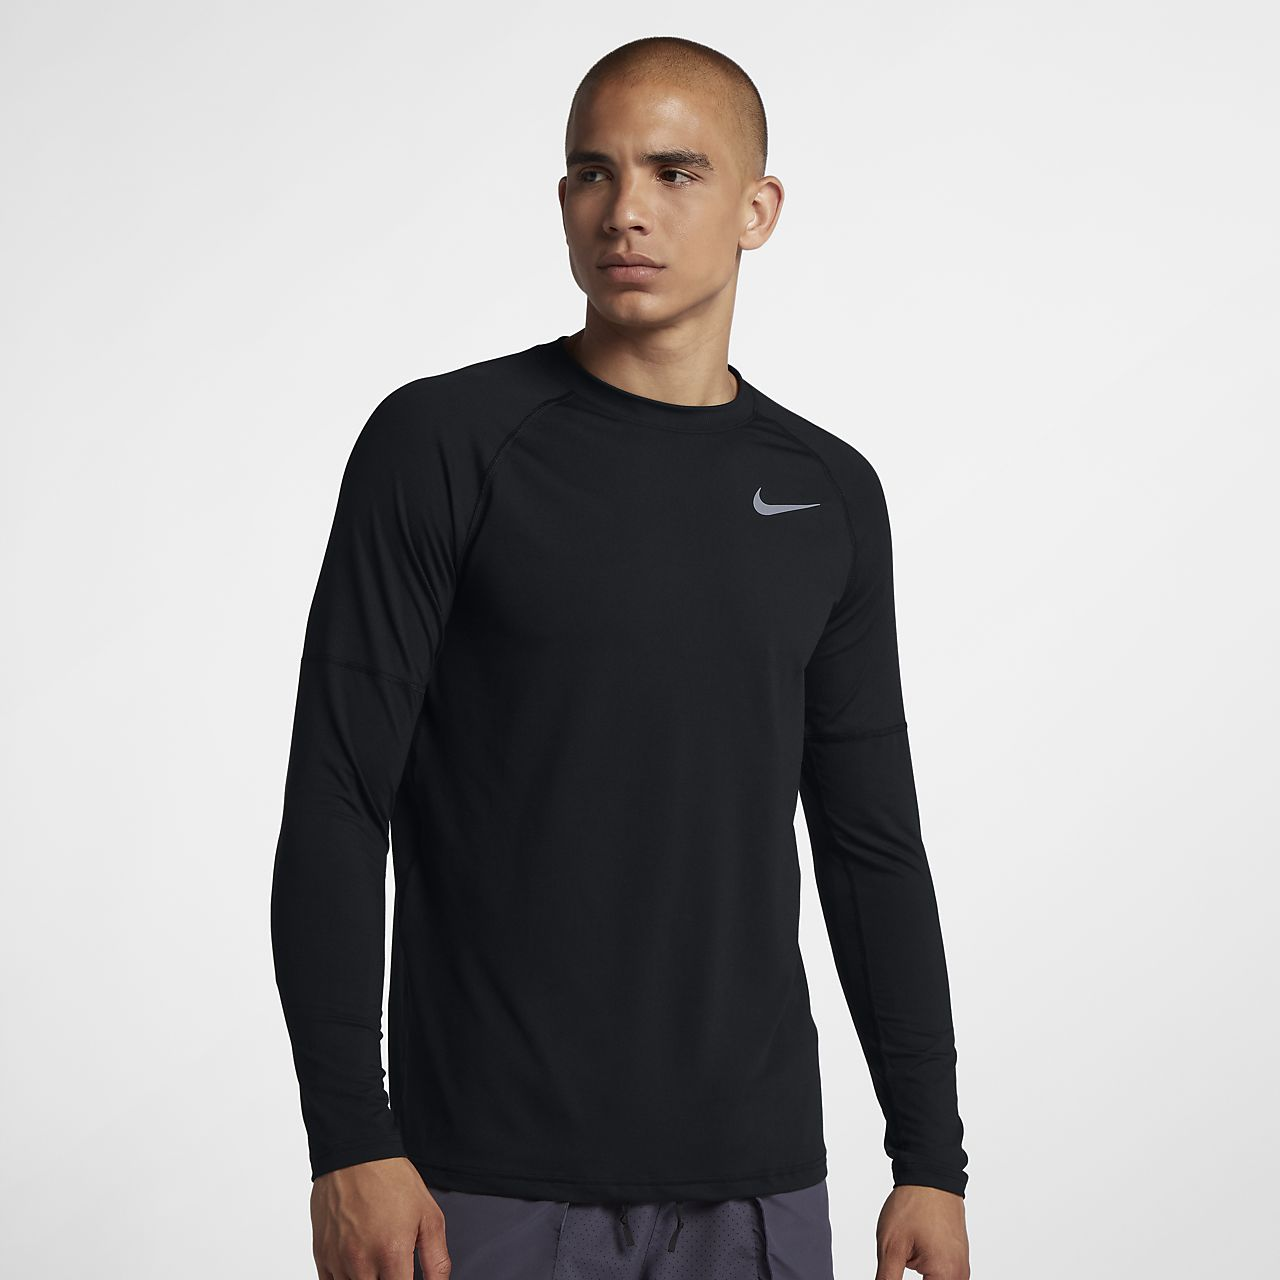 8d159068 Nike Men's Running Top. Nike.com AU